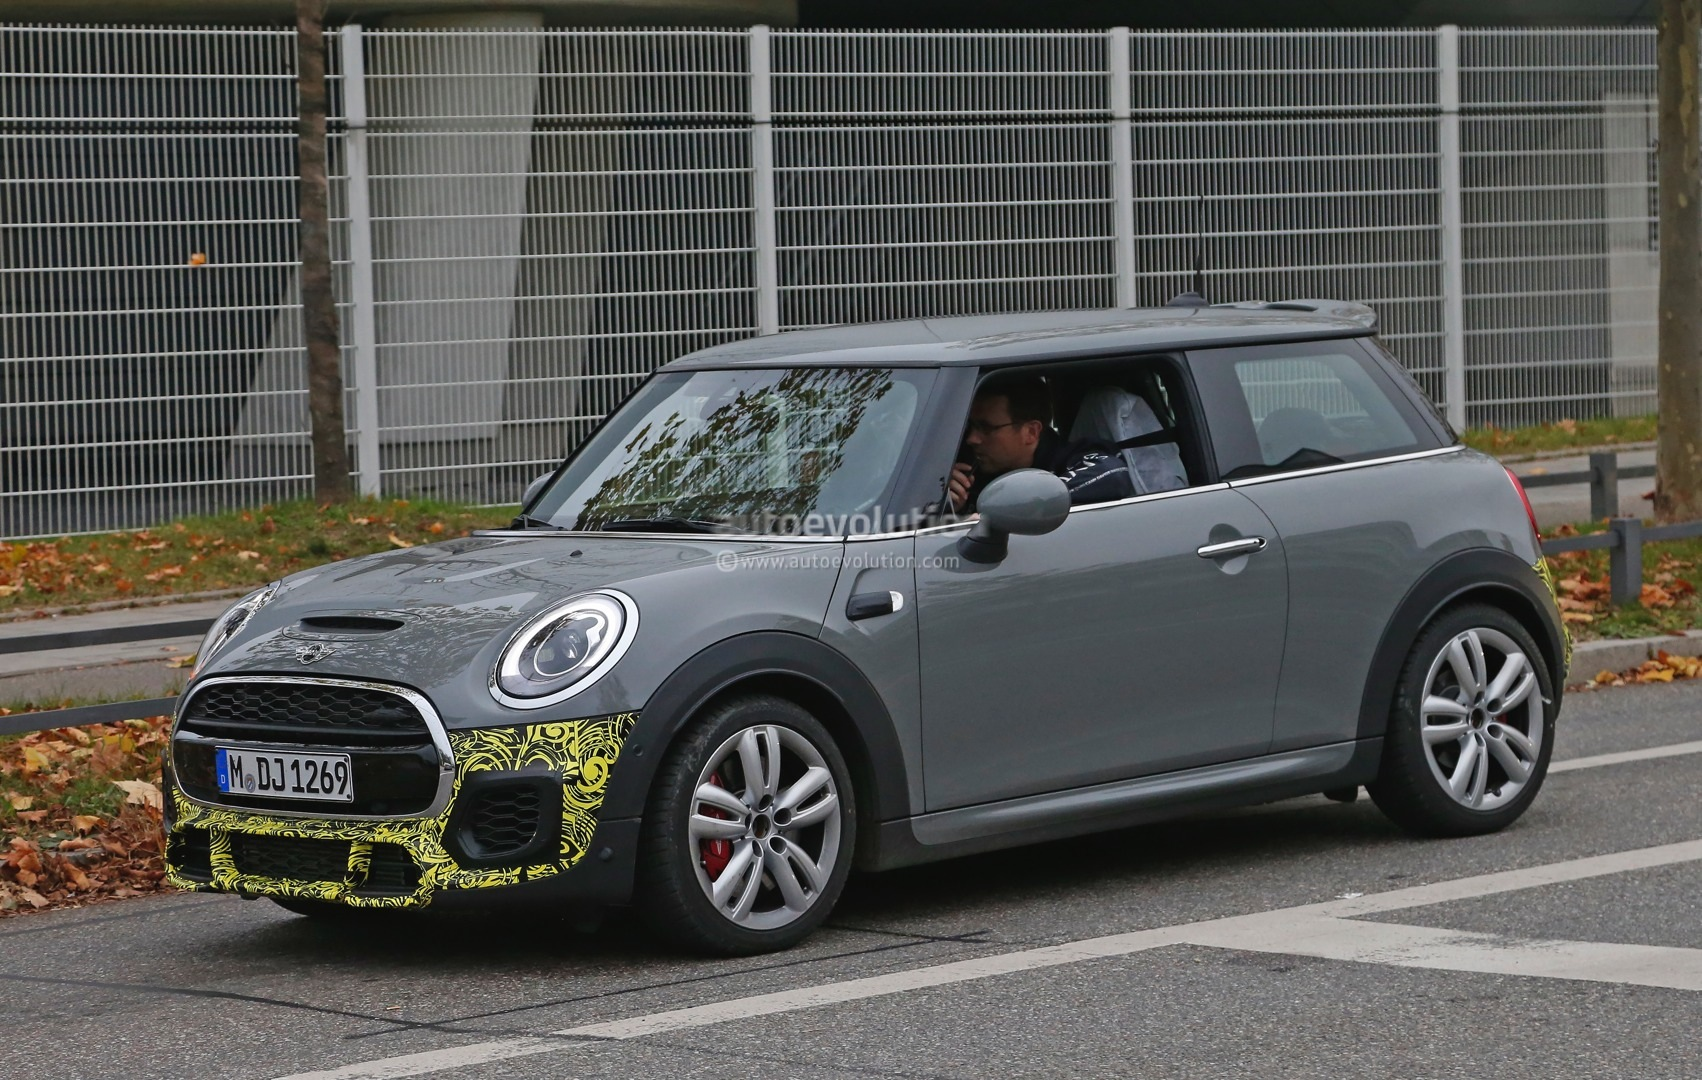 2015 mini john cooper works hardtop spied in production guise autoevolution. Black Bedroom Furniture Sets. Home Design Ideas